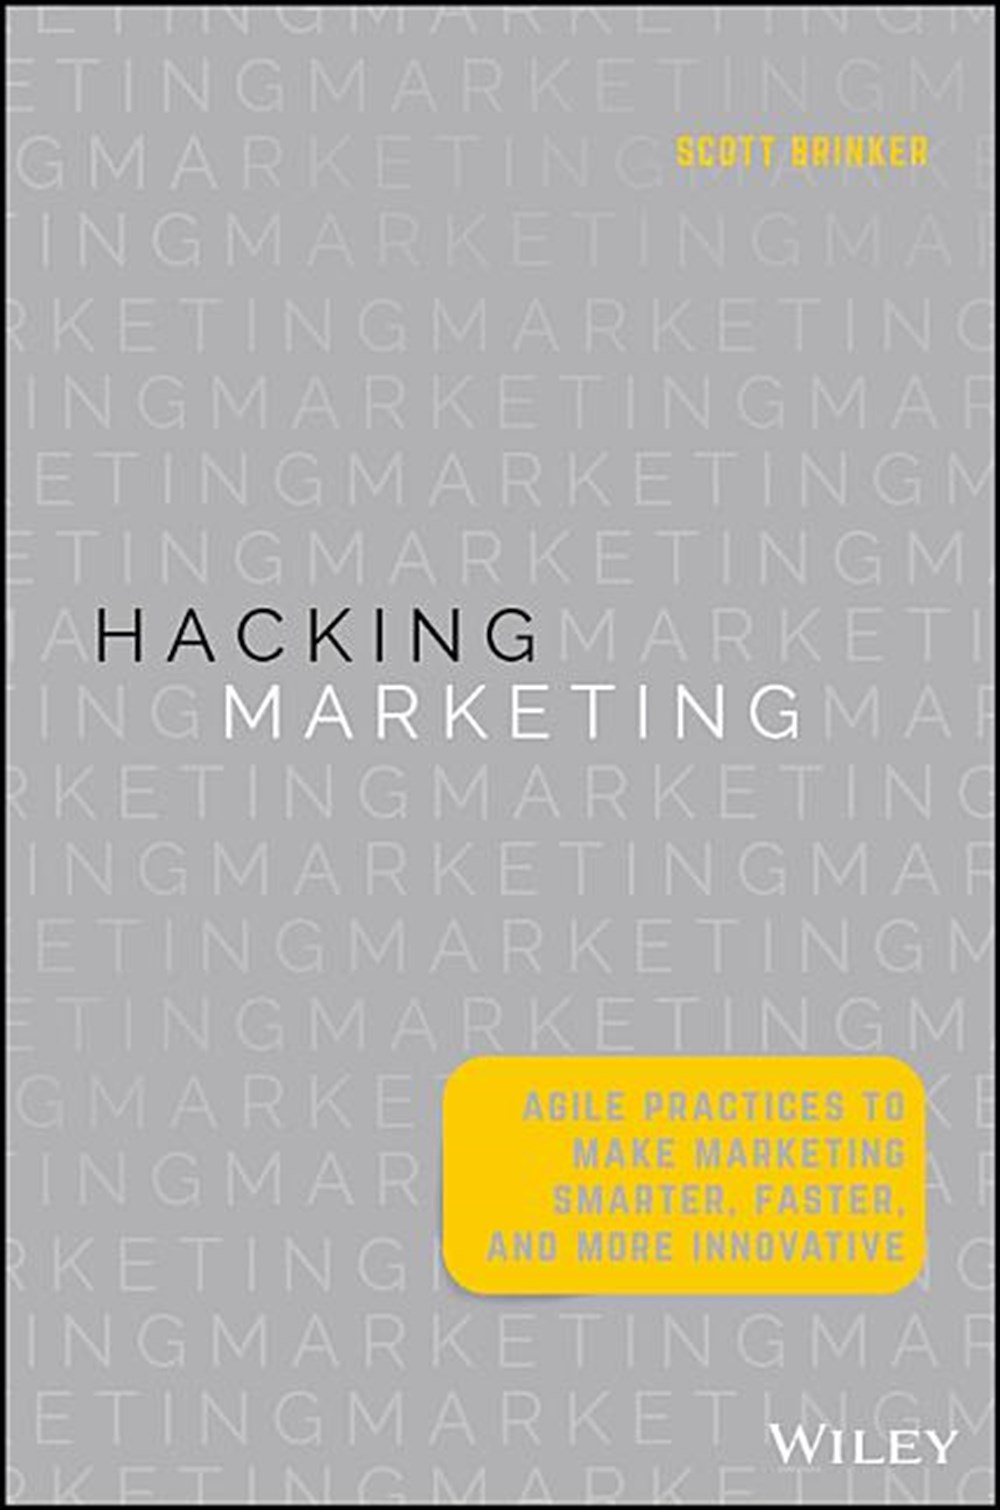 Hacking Marketing Agile Practices to Make Marketing Smarter, Faster, and More Innovative